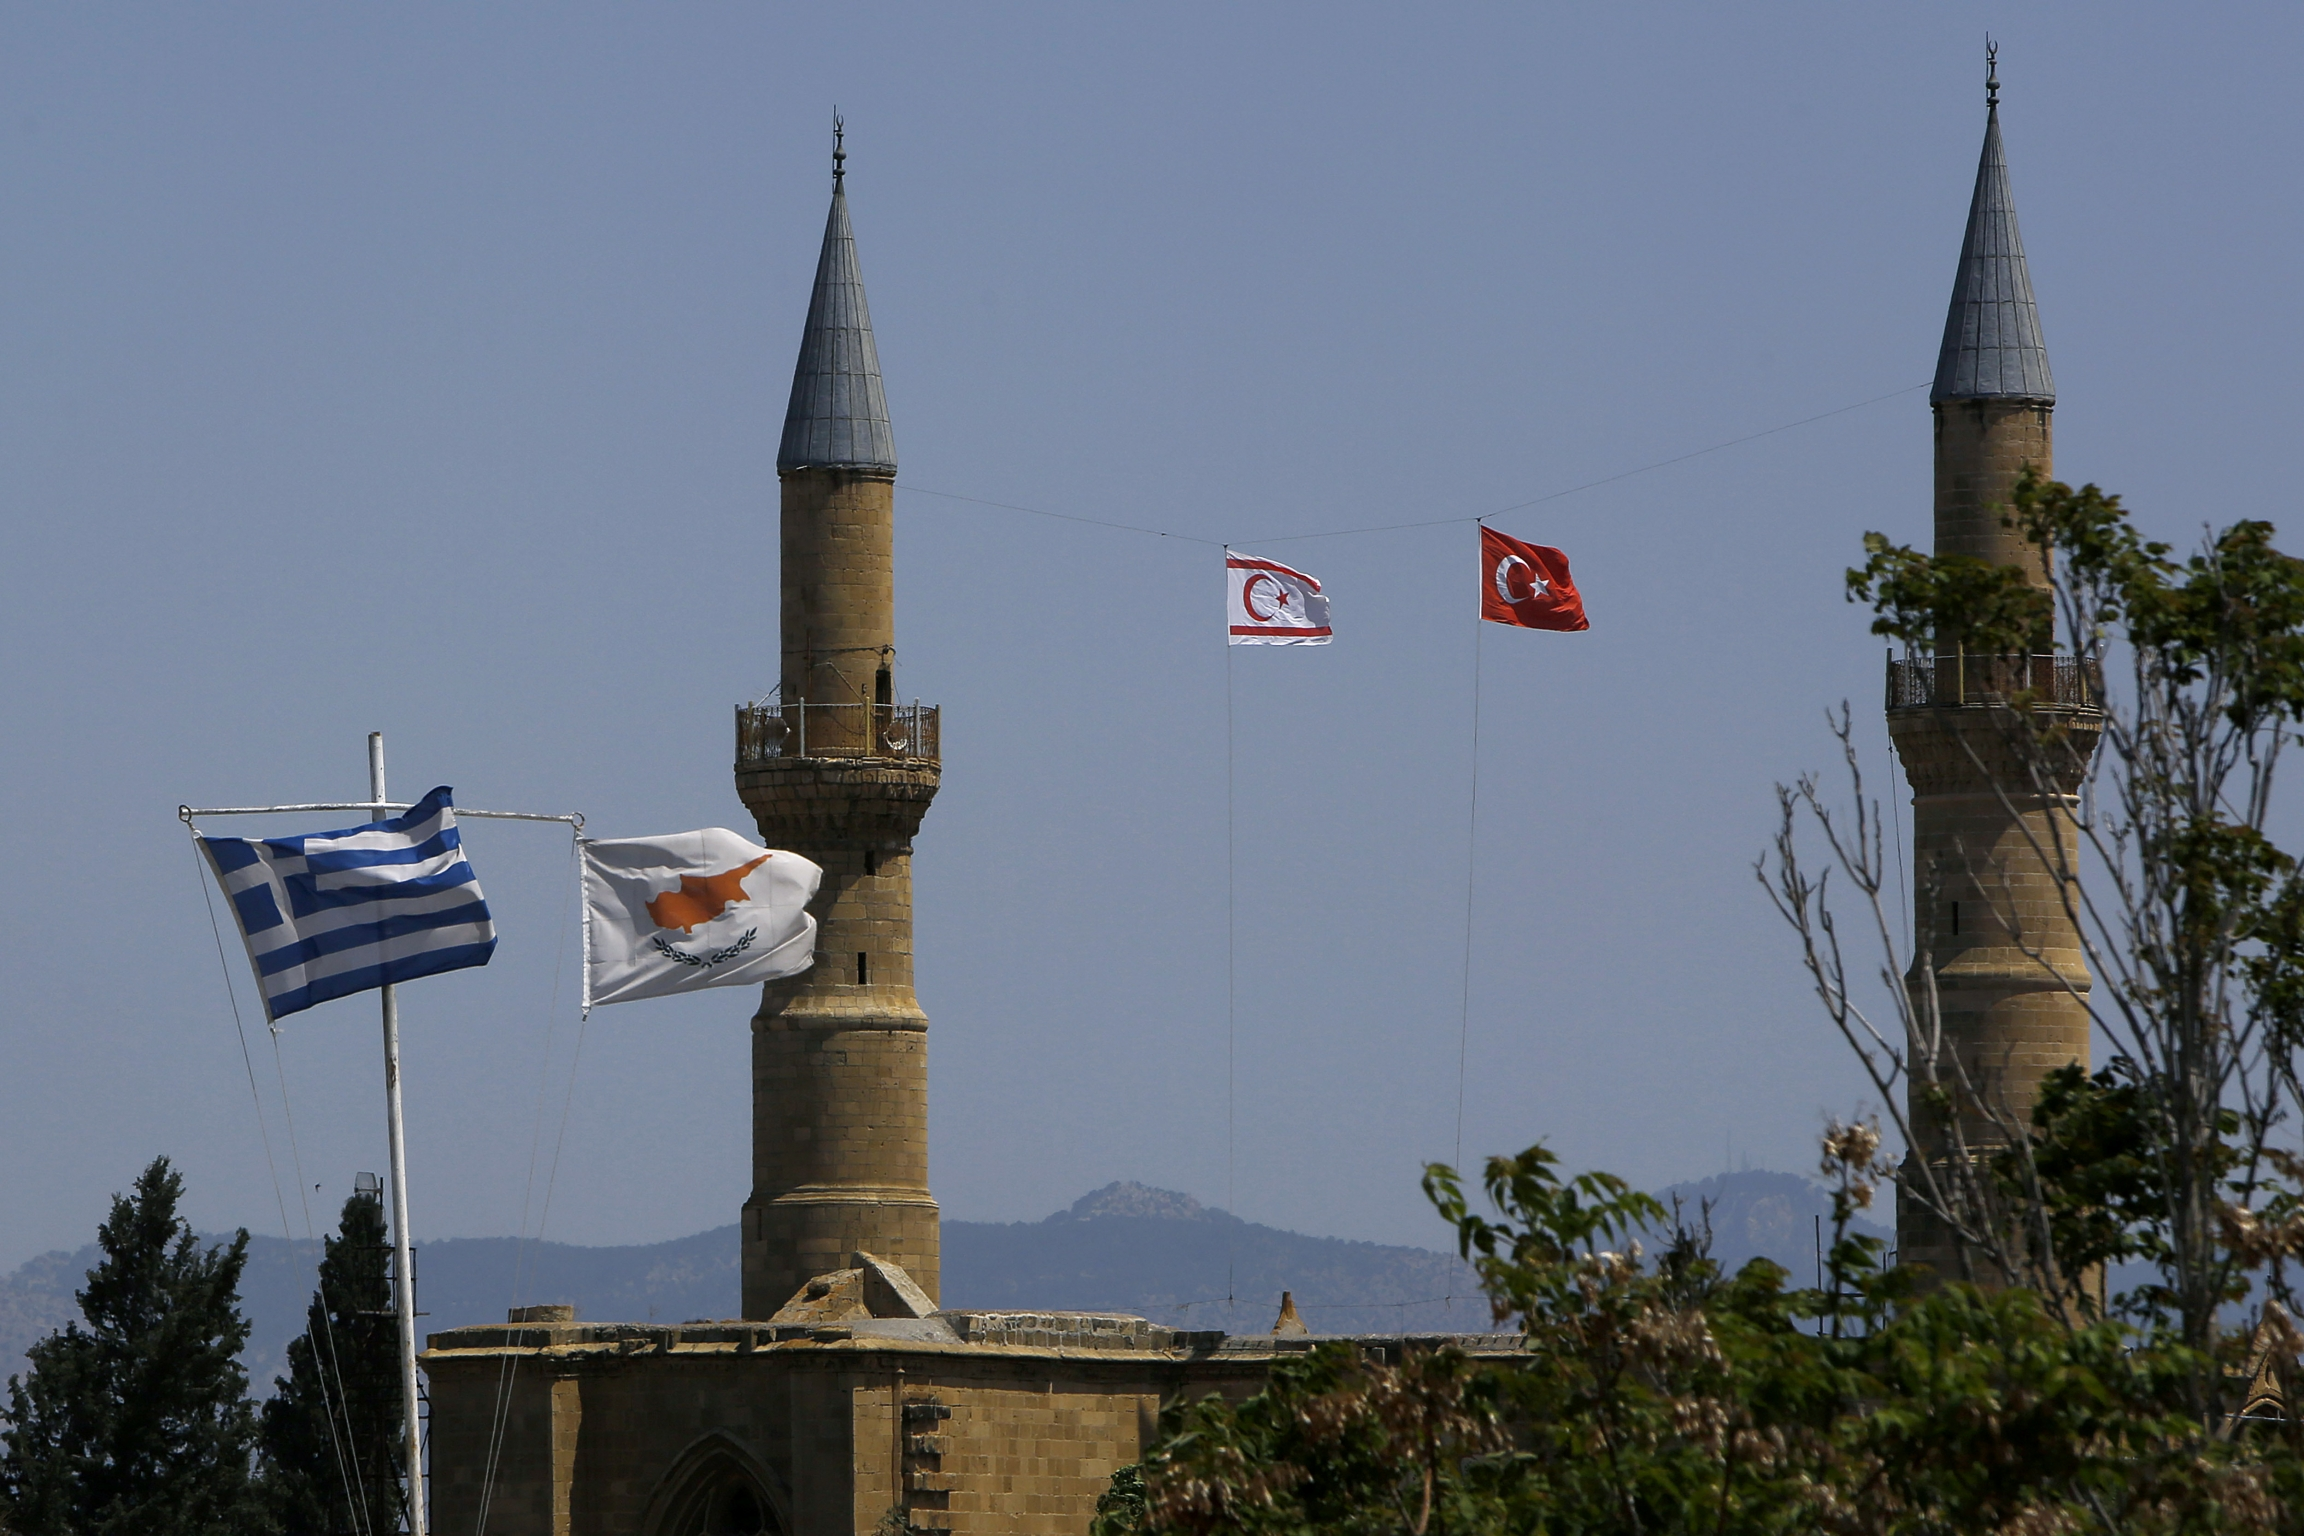 Greek and Cypriot flags flutter on poles on the left, as Turkish and Turkish Cypriot breakaway flags fly between minarets on the right